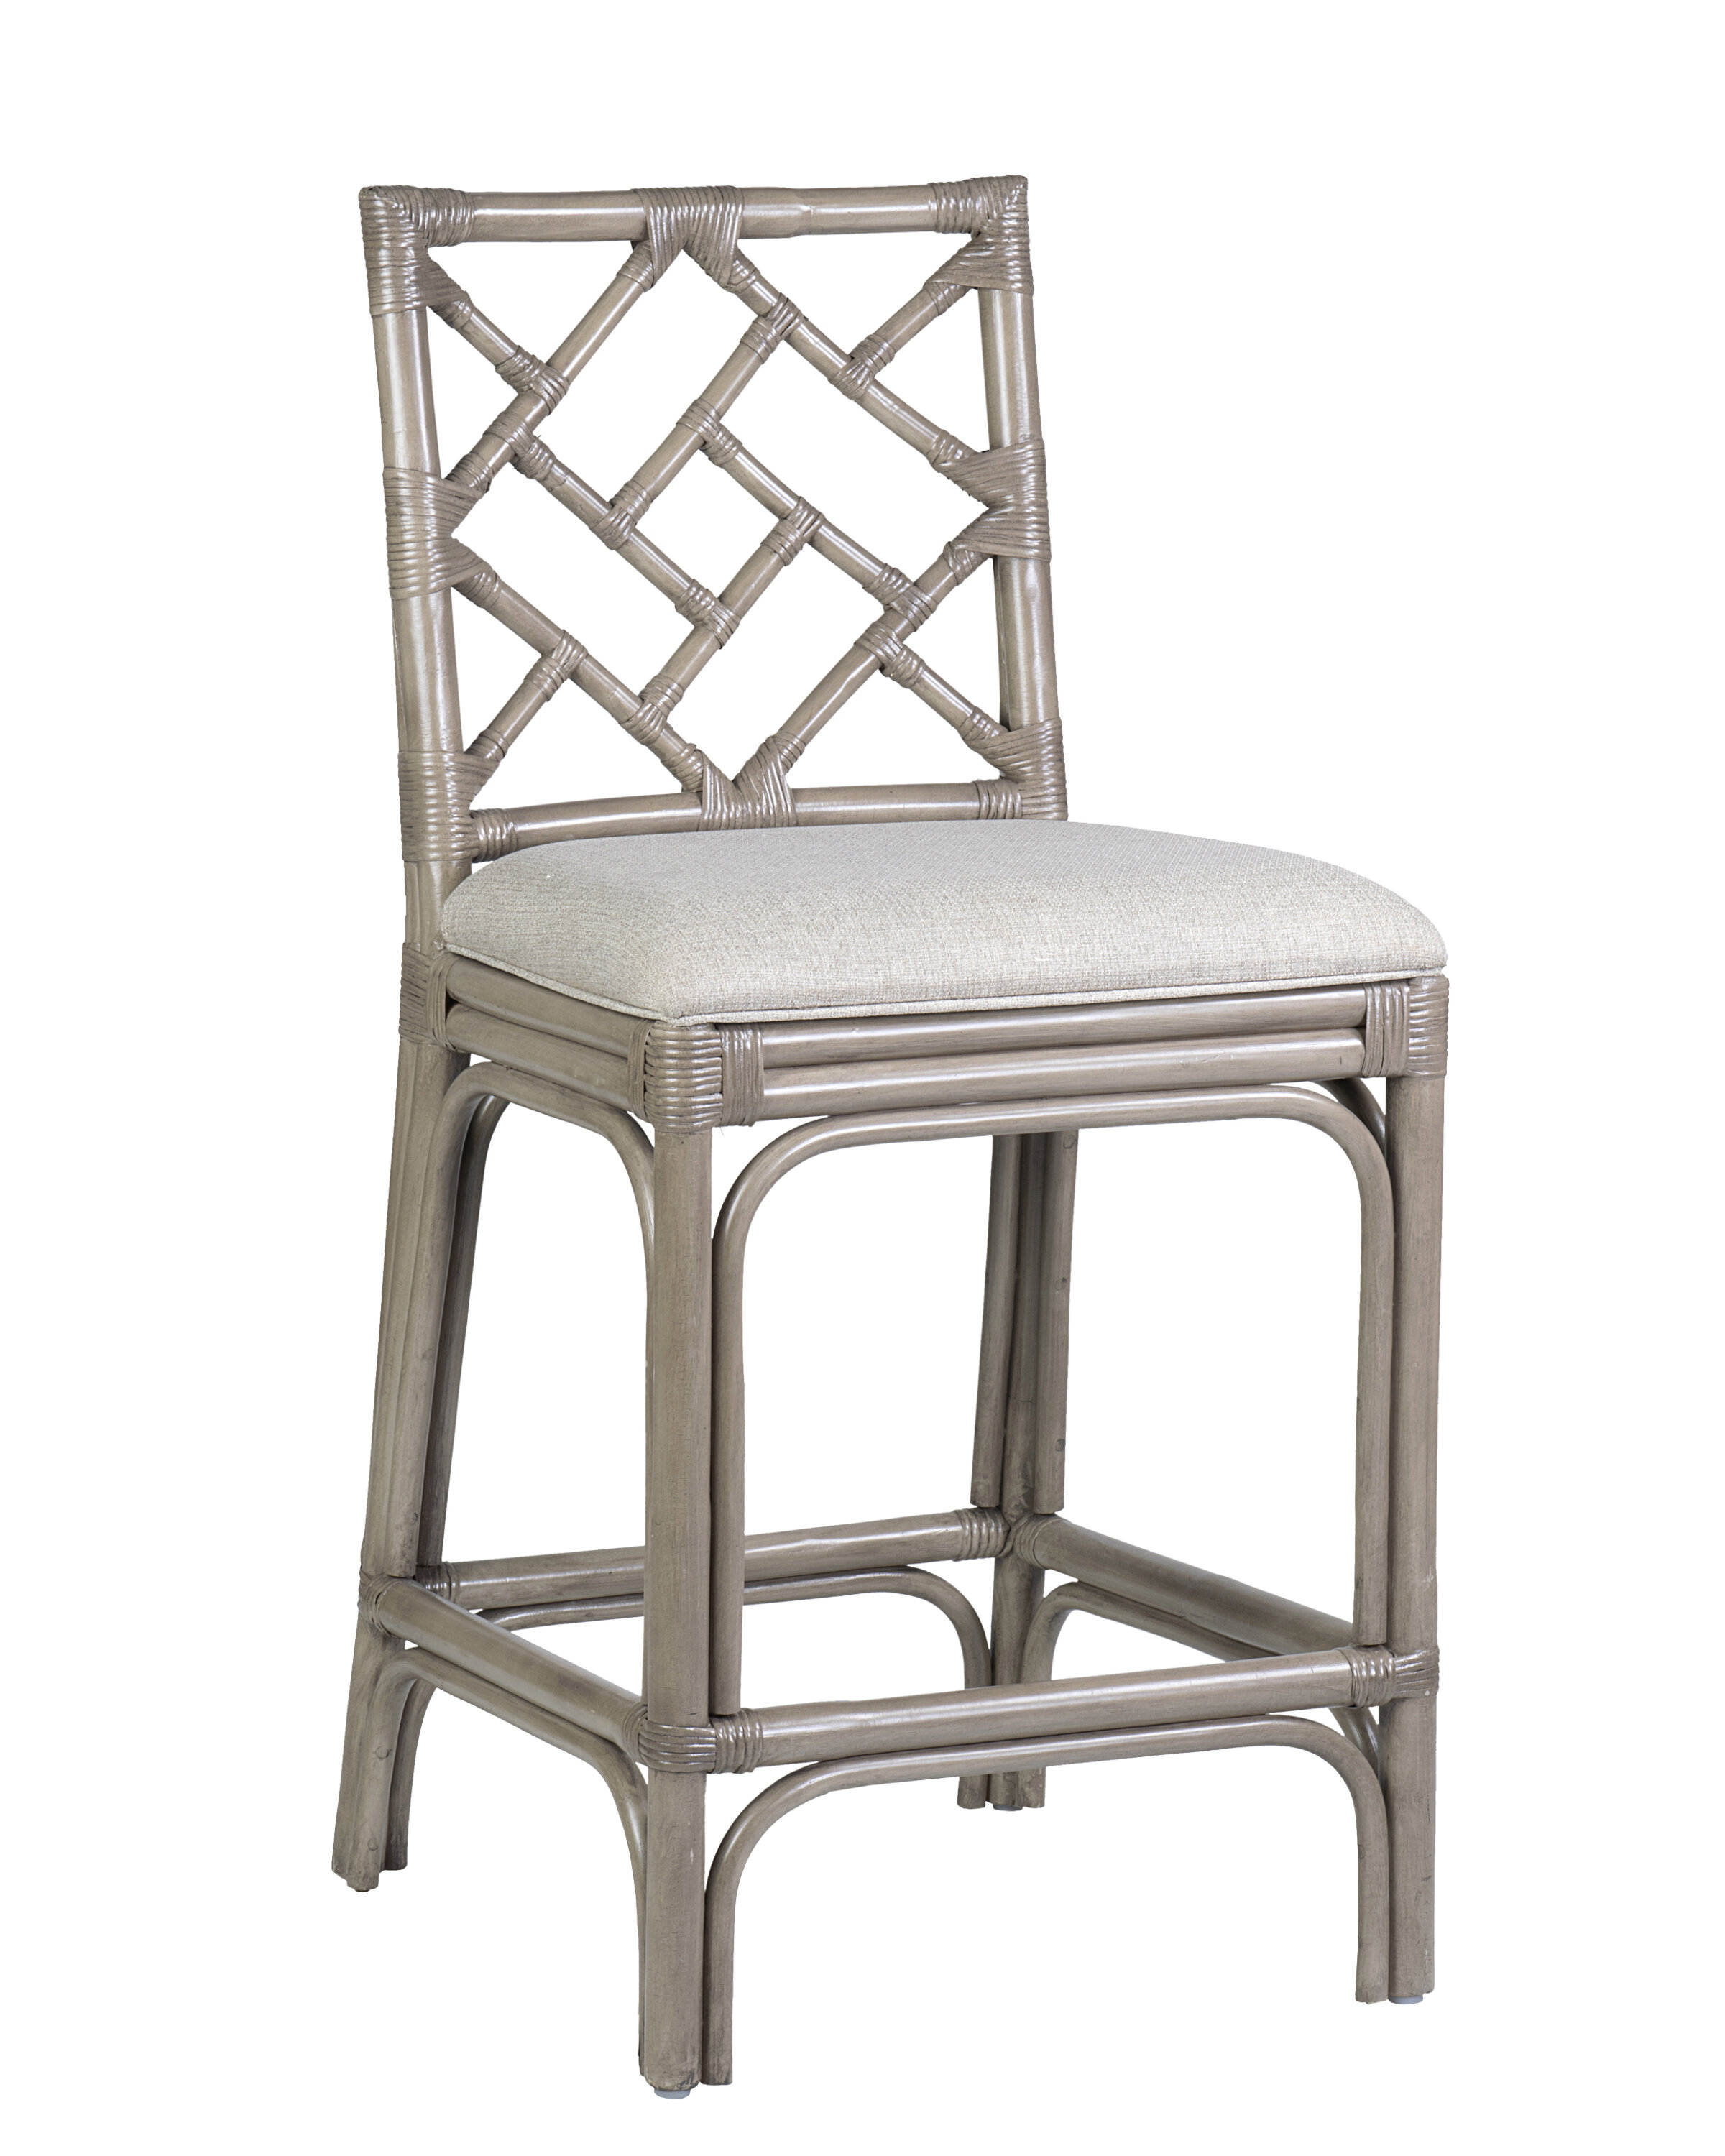 Remarkable Rosecliff Heights Michaels Rattan 24 Bar Stool Reviews Frankydiablos Diy Chair Ideas Frankydiabloscom